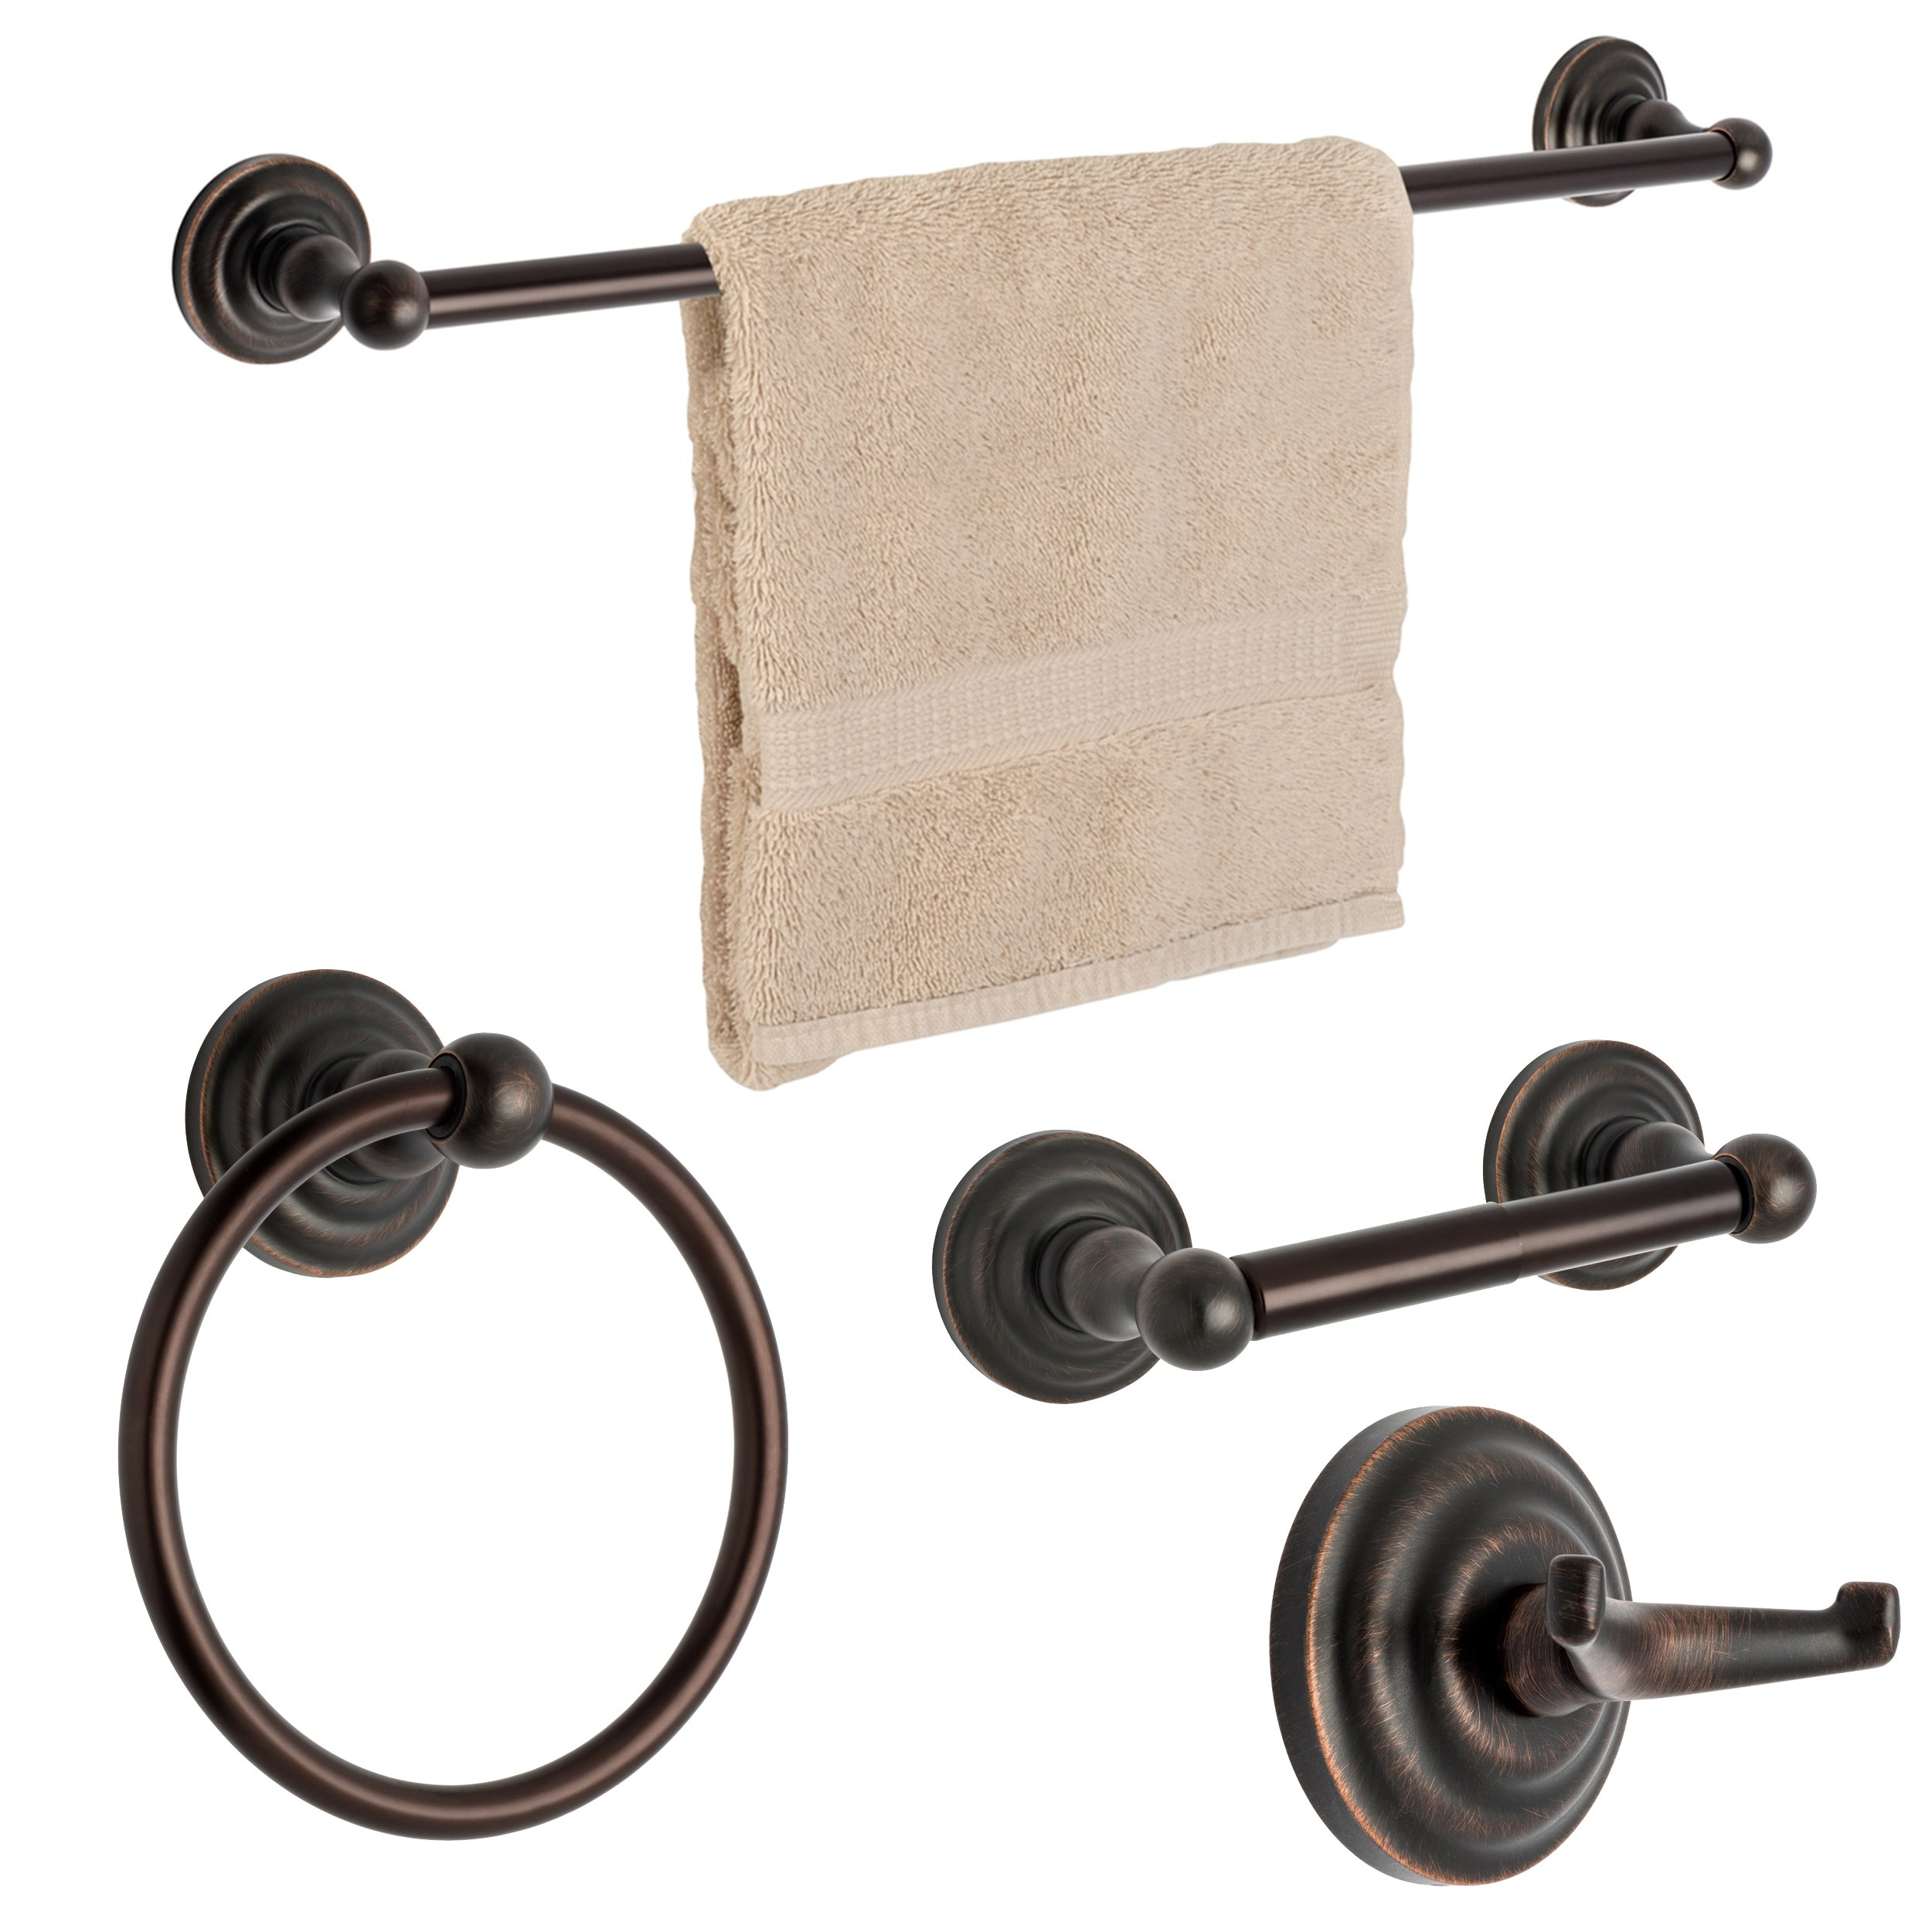 Dynasty Hardware 3800-ORB-4PC Palisades Series Bathroom Hardware Set, Oil Rubbed Bronze, 4-Piece Set, With 24'' Towel Bar